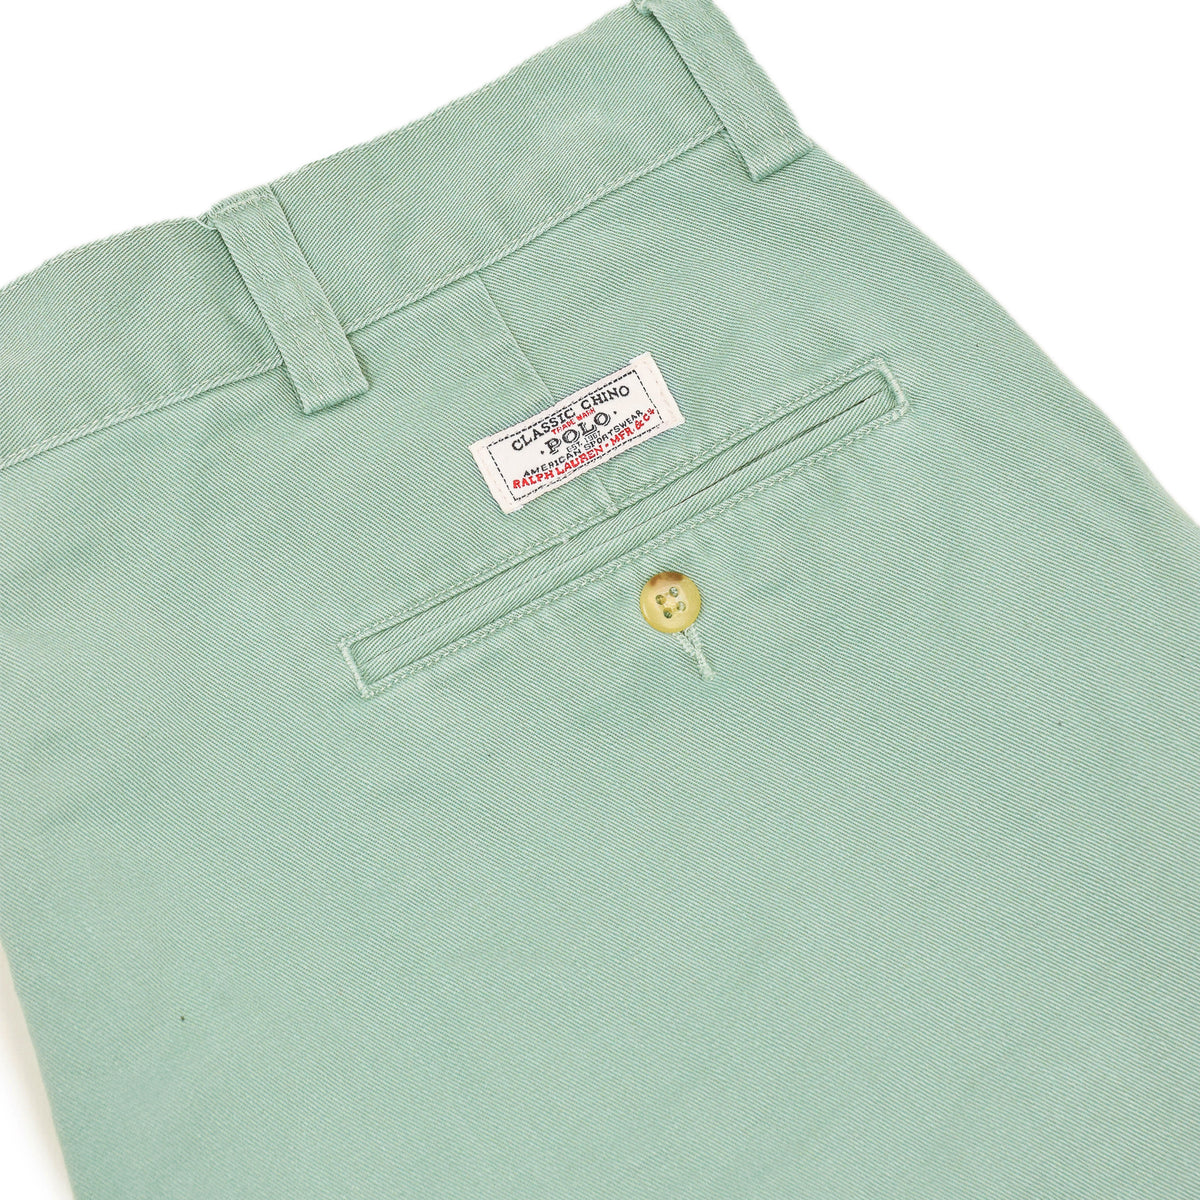 Vintage 90s Polo Ralph Lauren Philip Green Cotton Chino Shorts 36 W back pocket